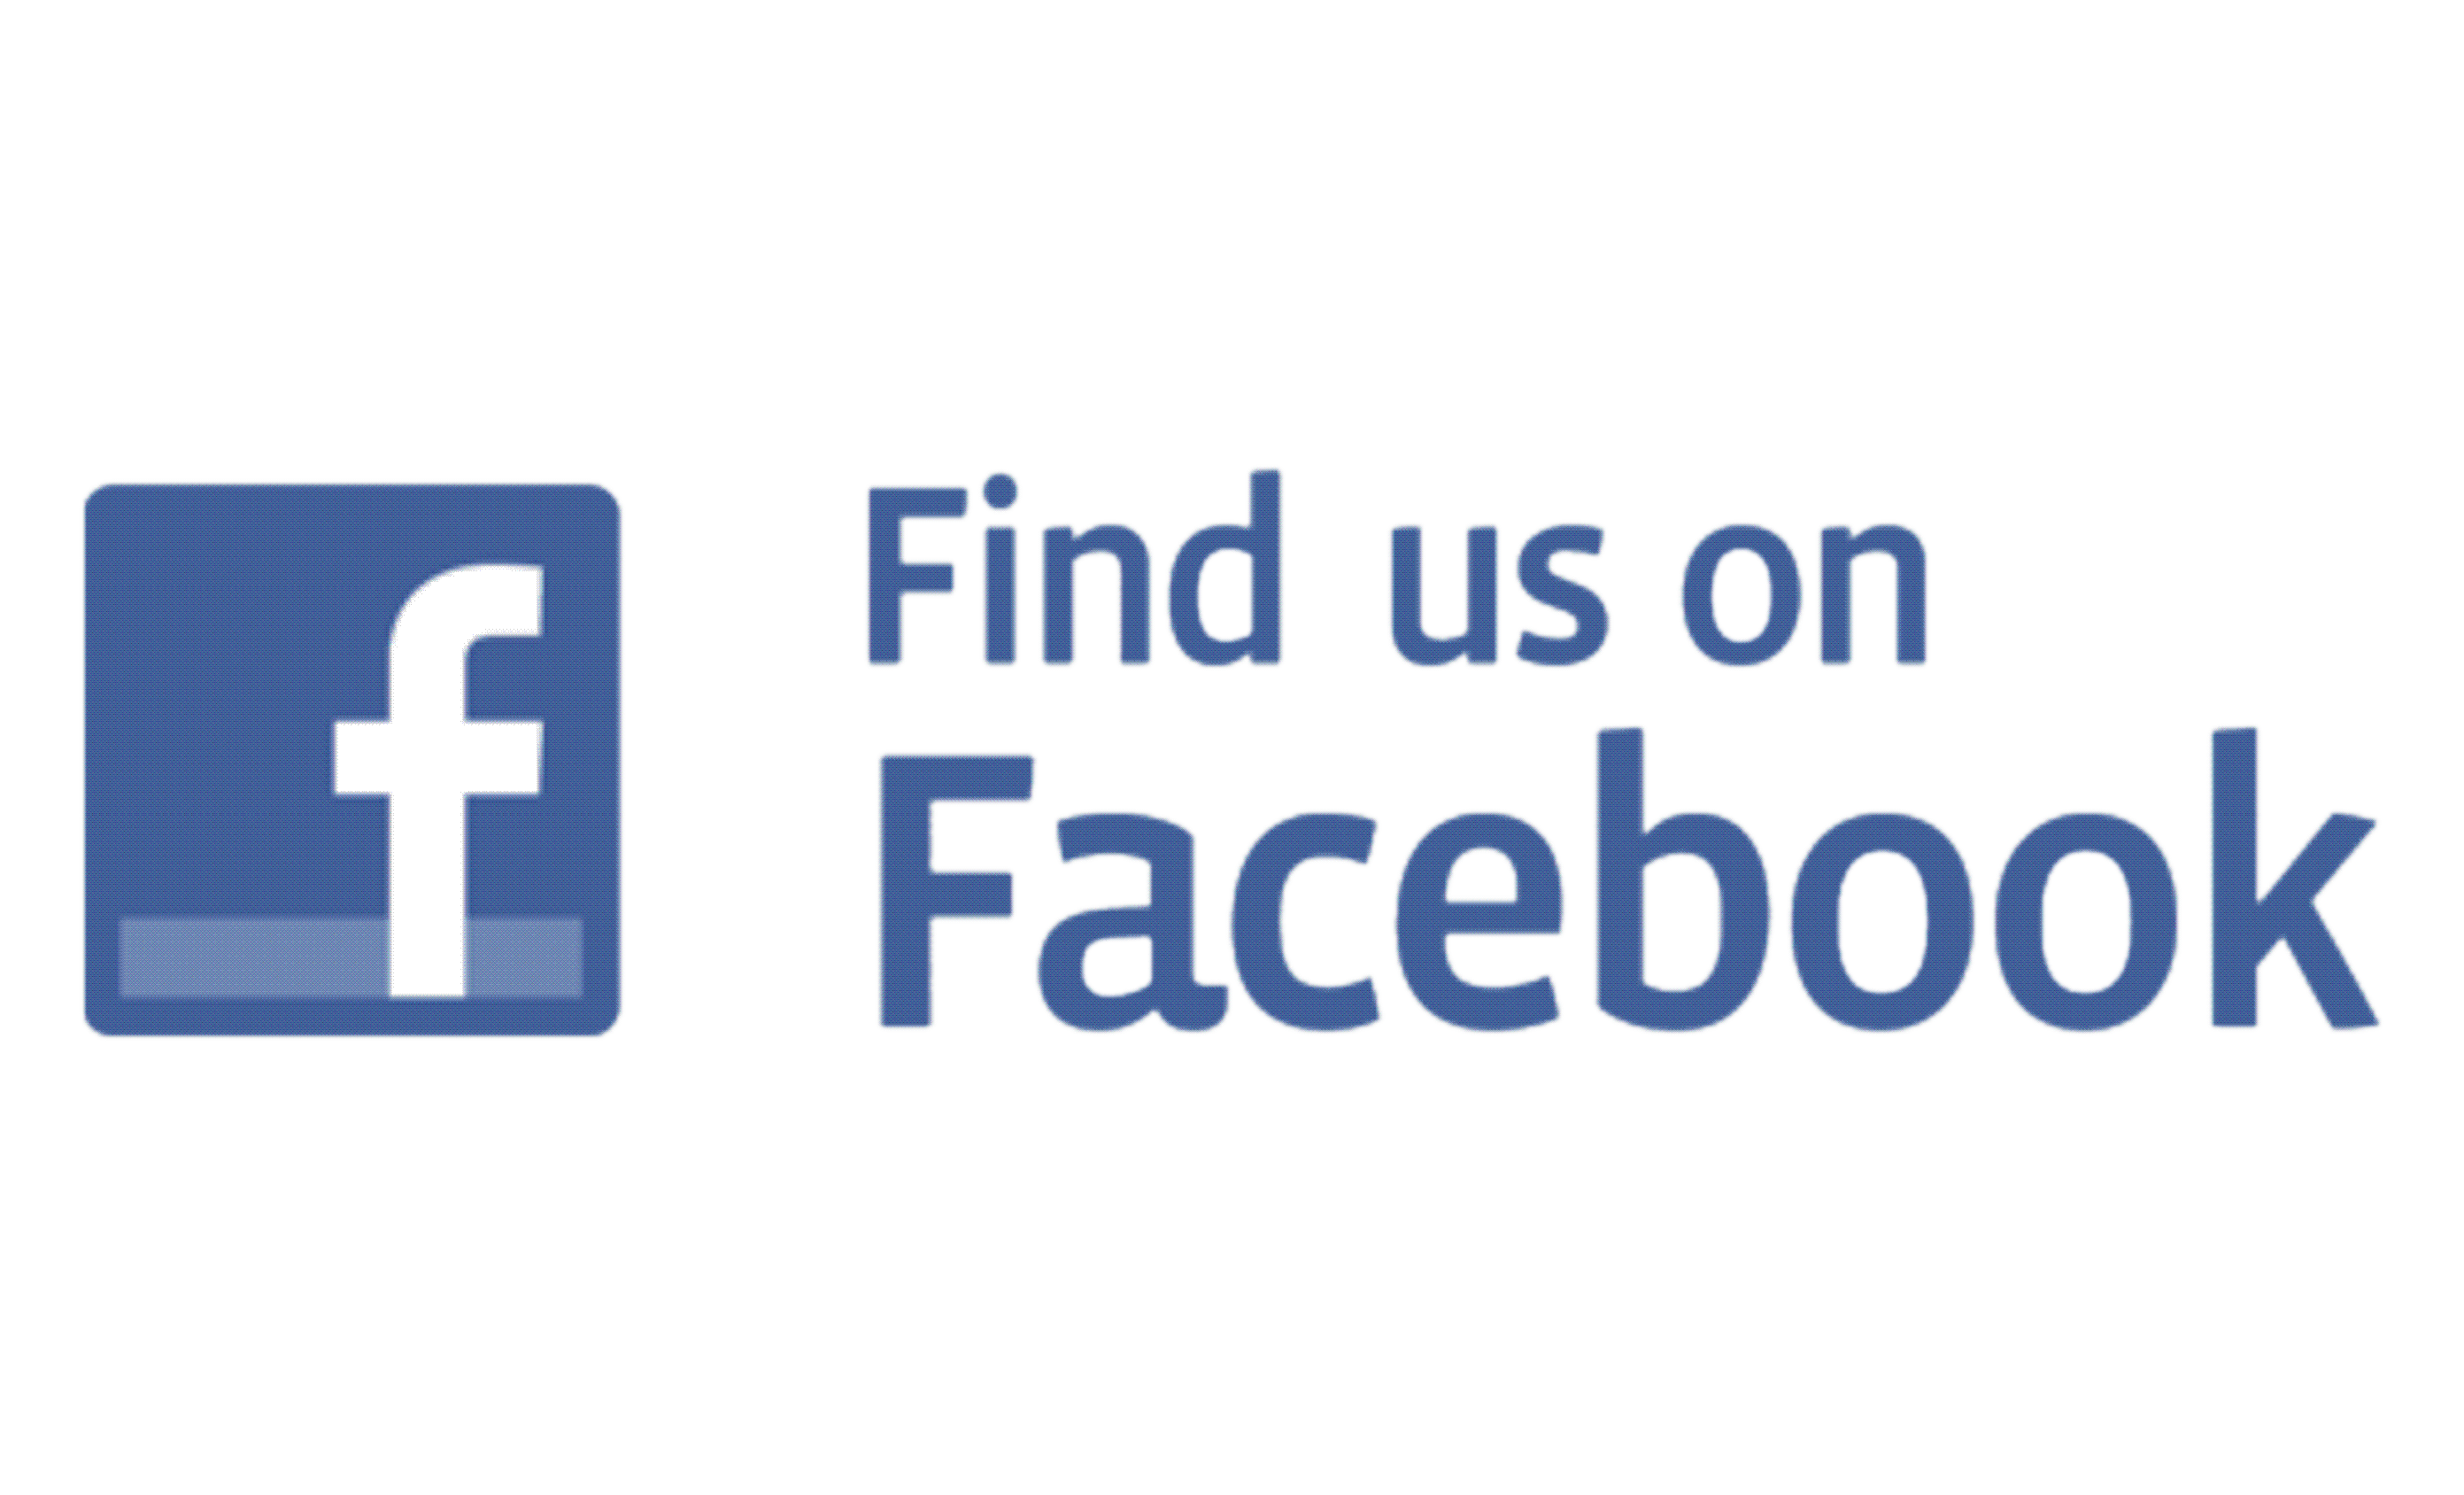 Facebook follow us logo